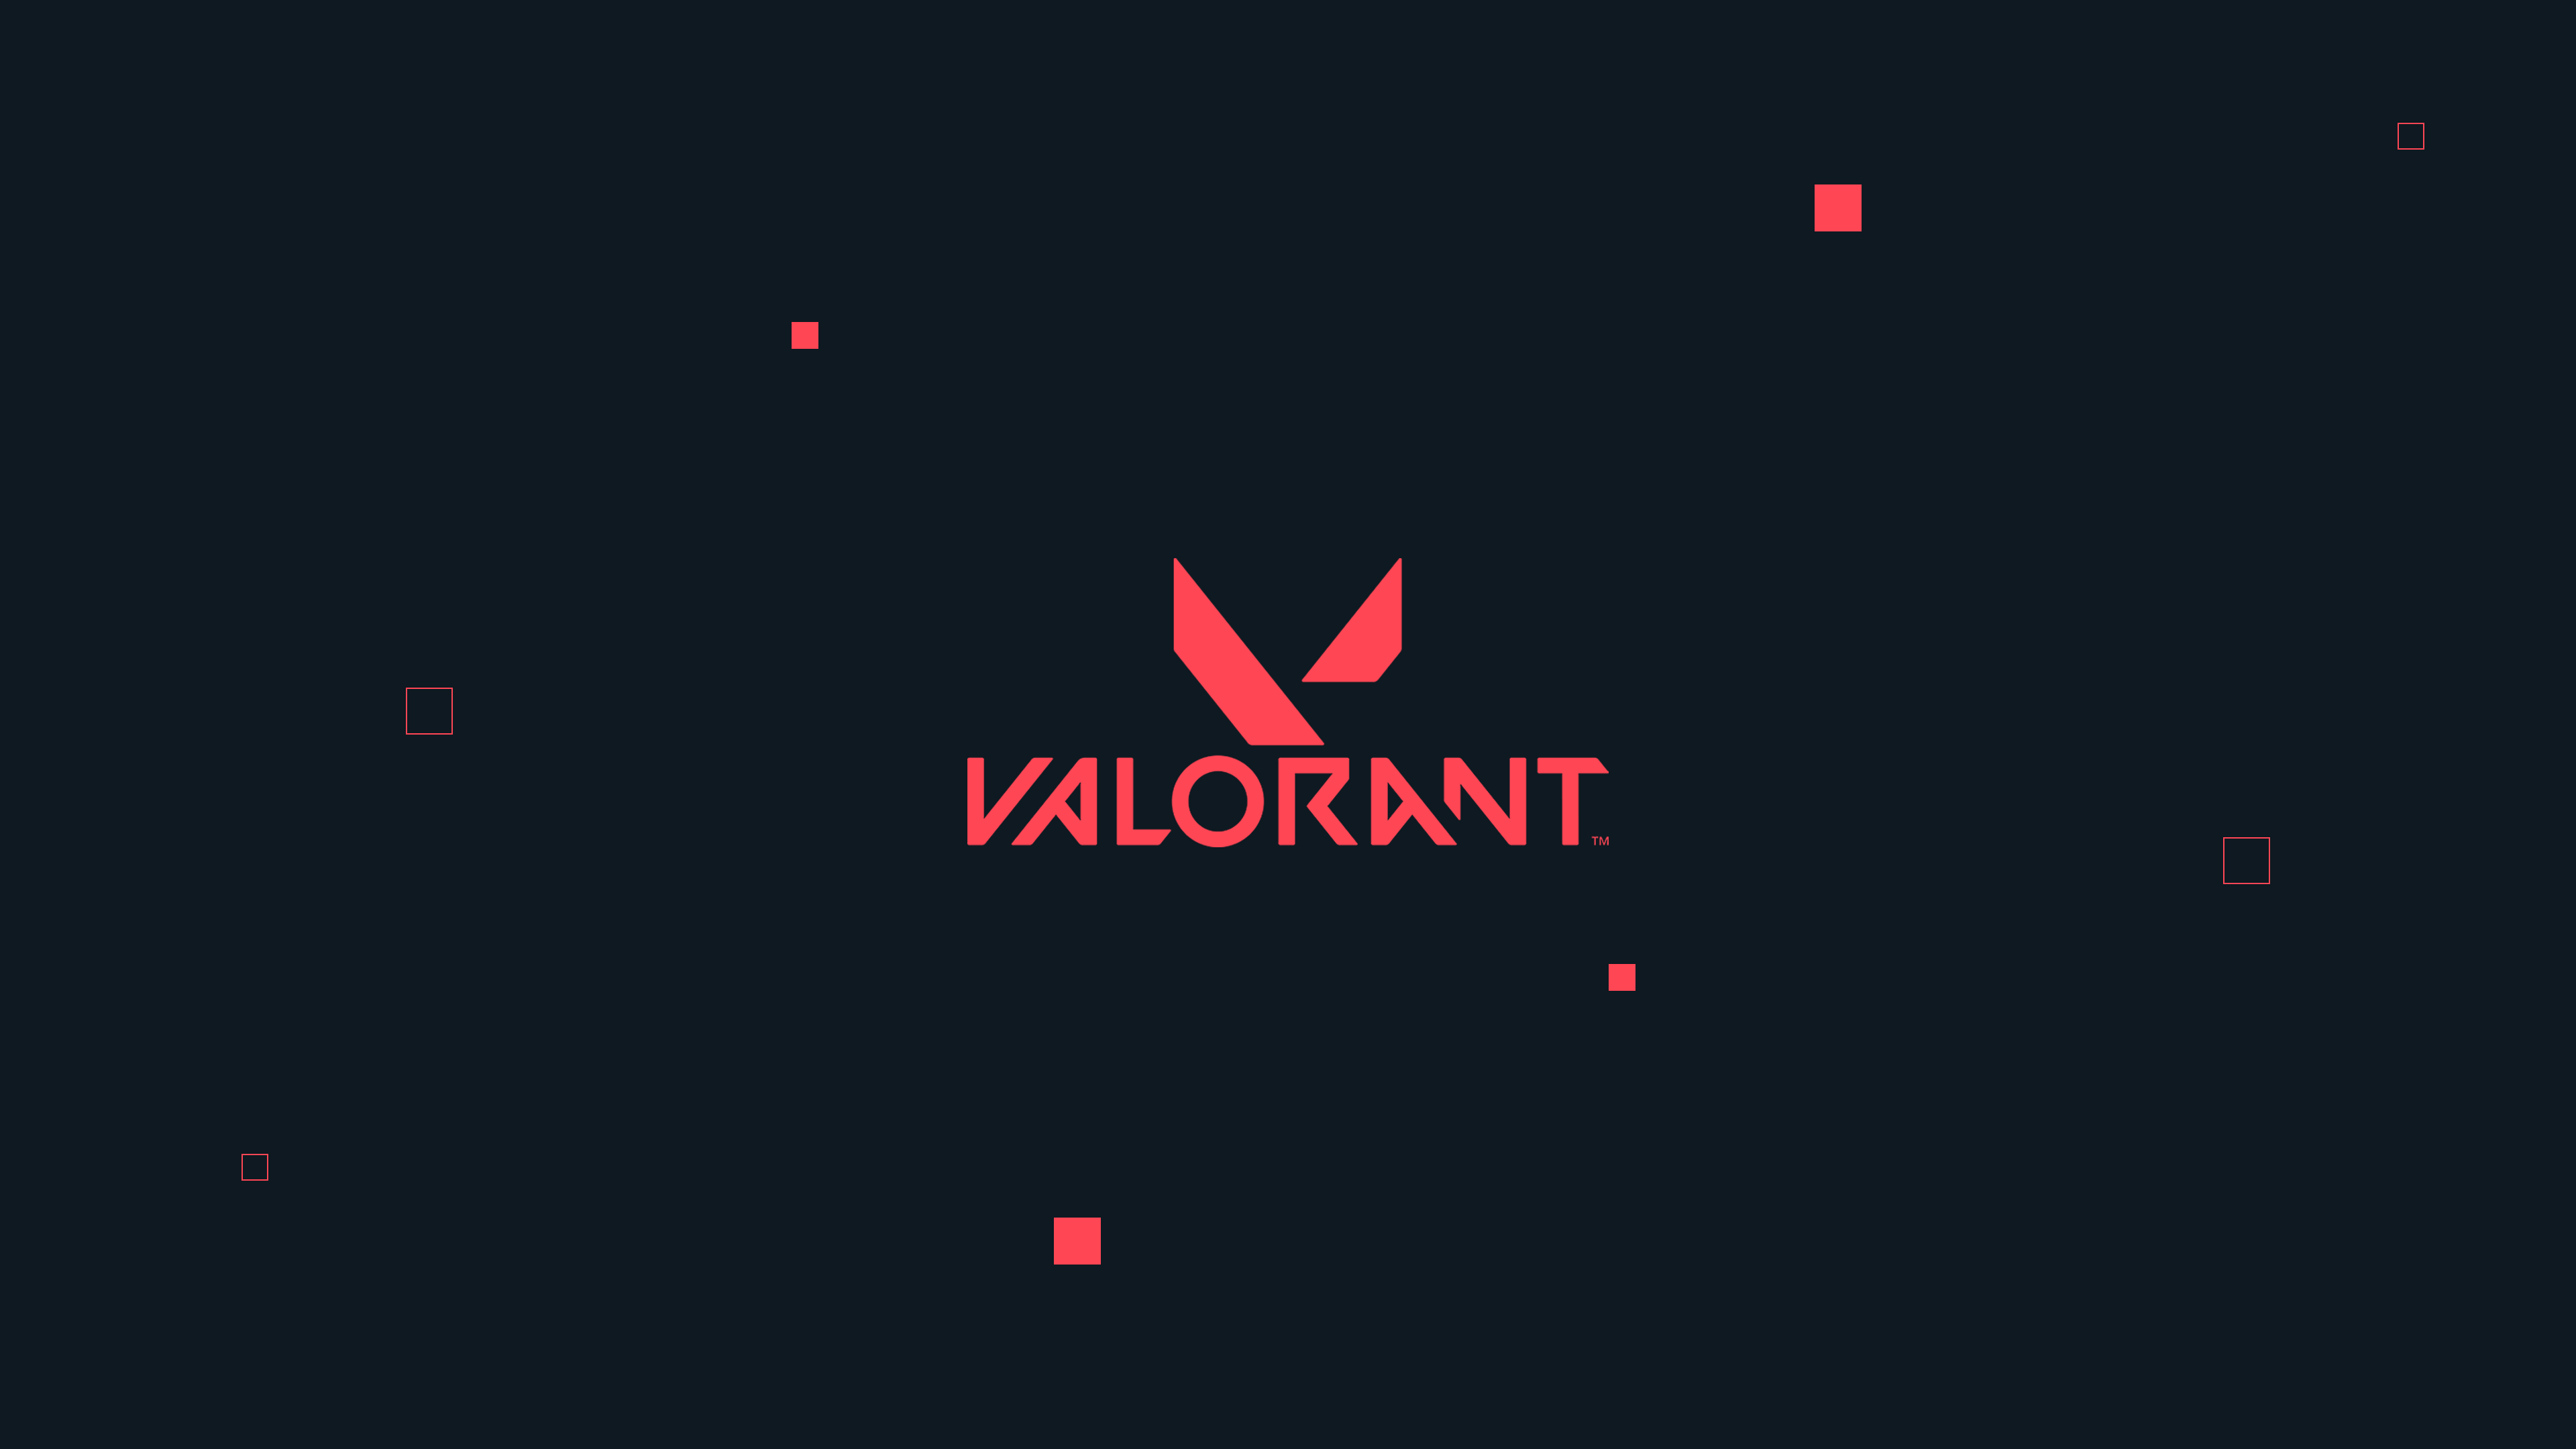 Valorant 4k Wallpapers DesktopMobile marnisotto   Album on Imgur 3840x2160